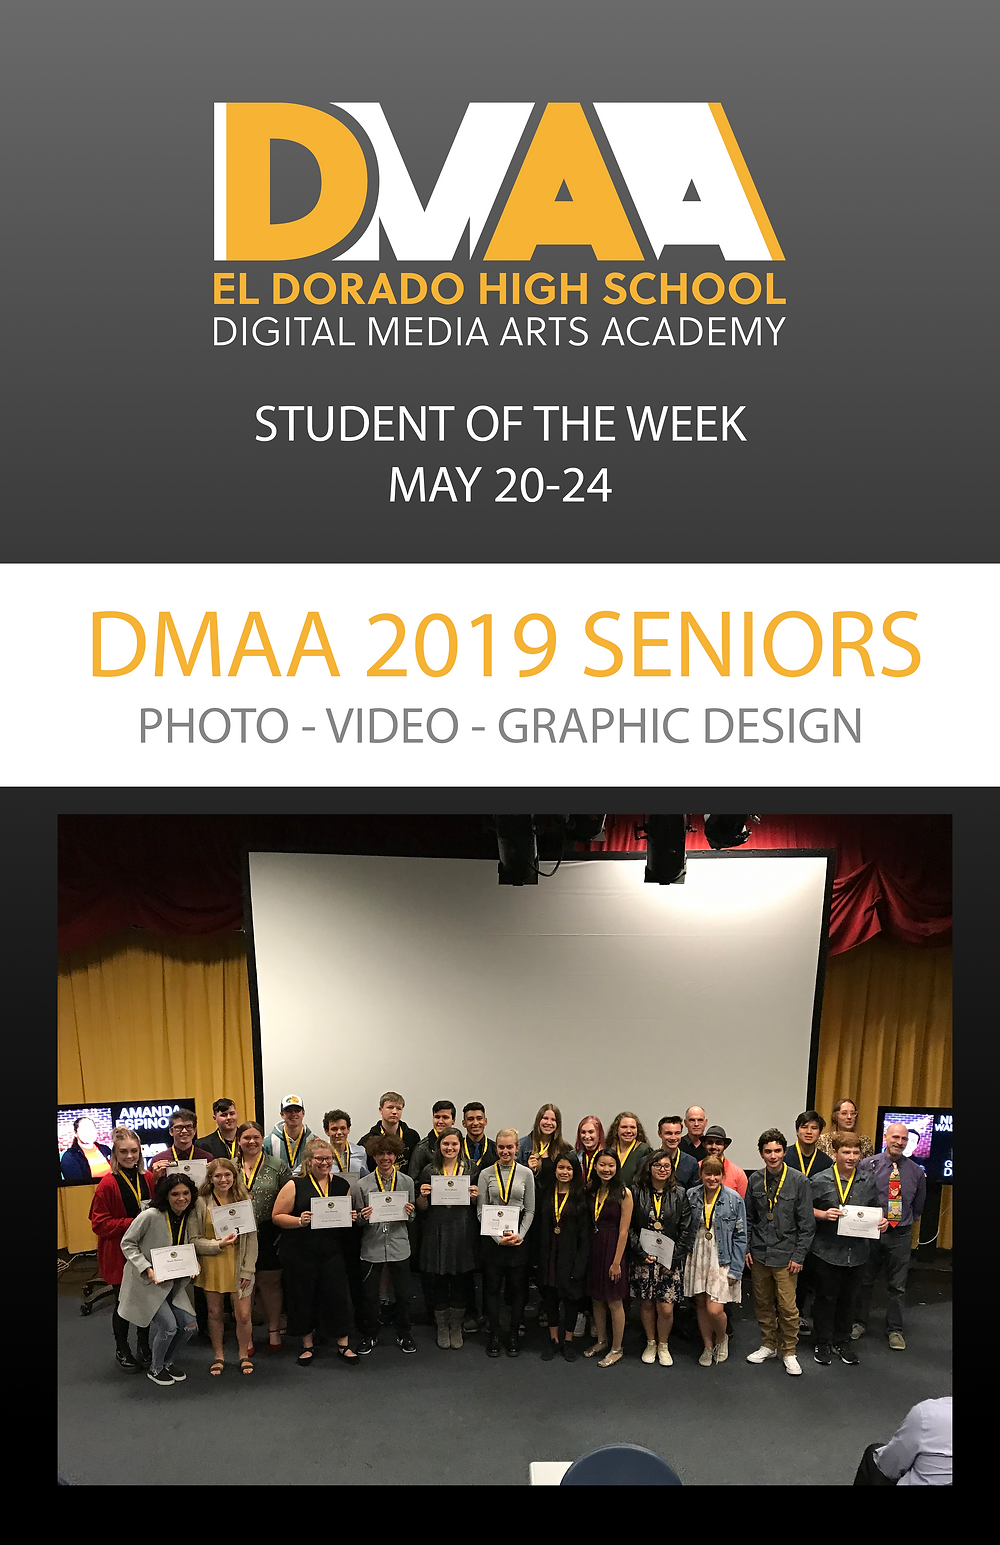 picture of DMAA seniors